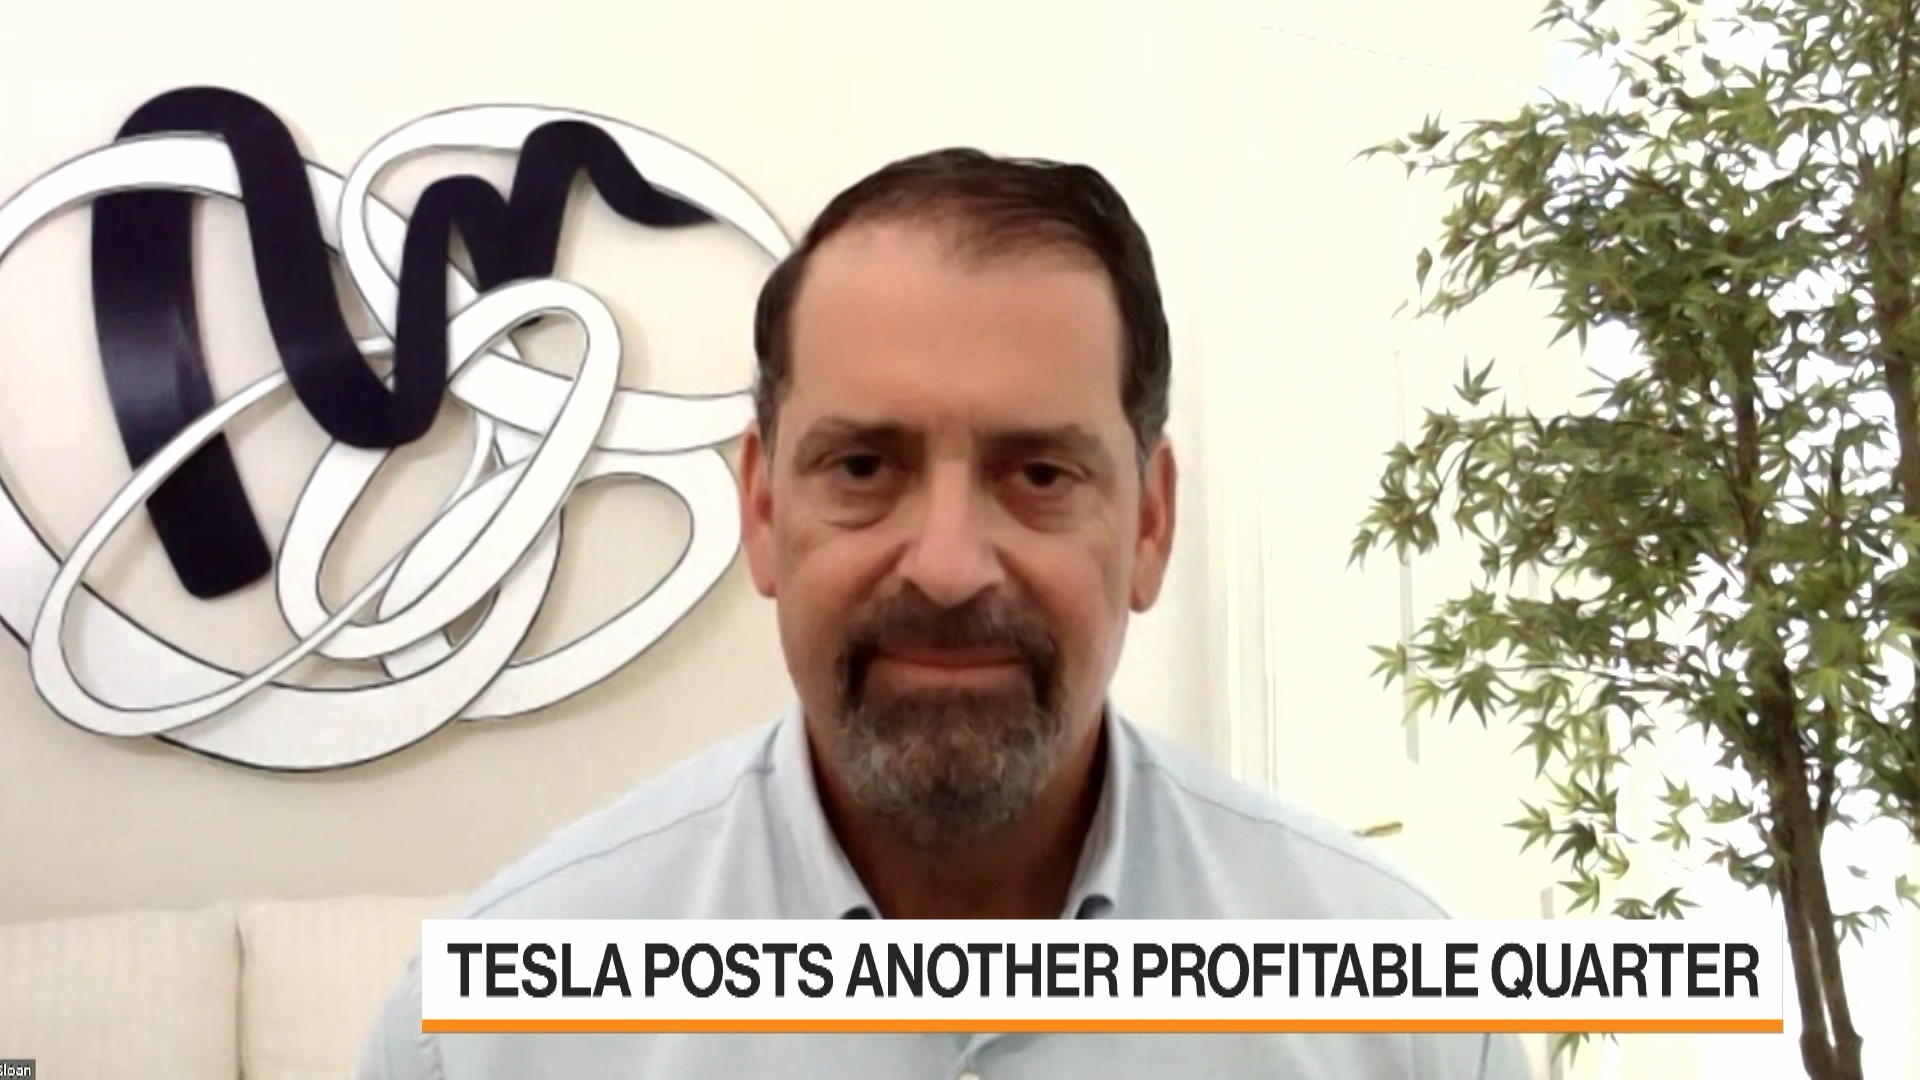 Tesla Stock Will Go to Mars Before SpaceX, Says S3 Partners Founder